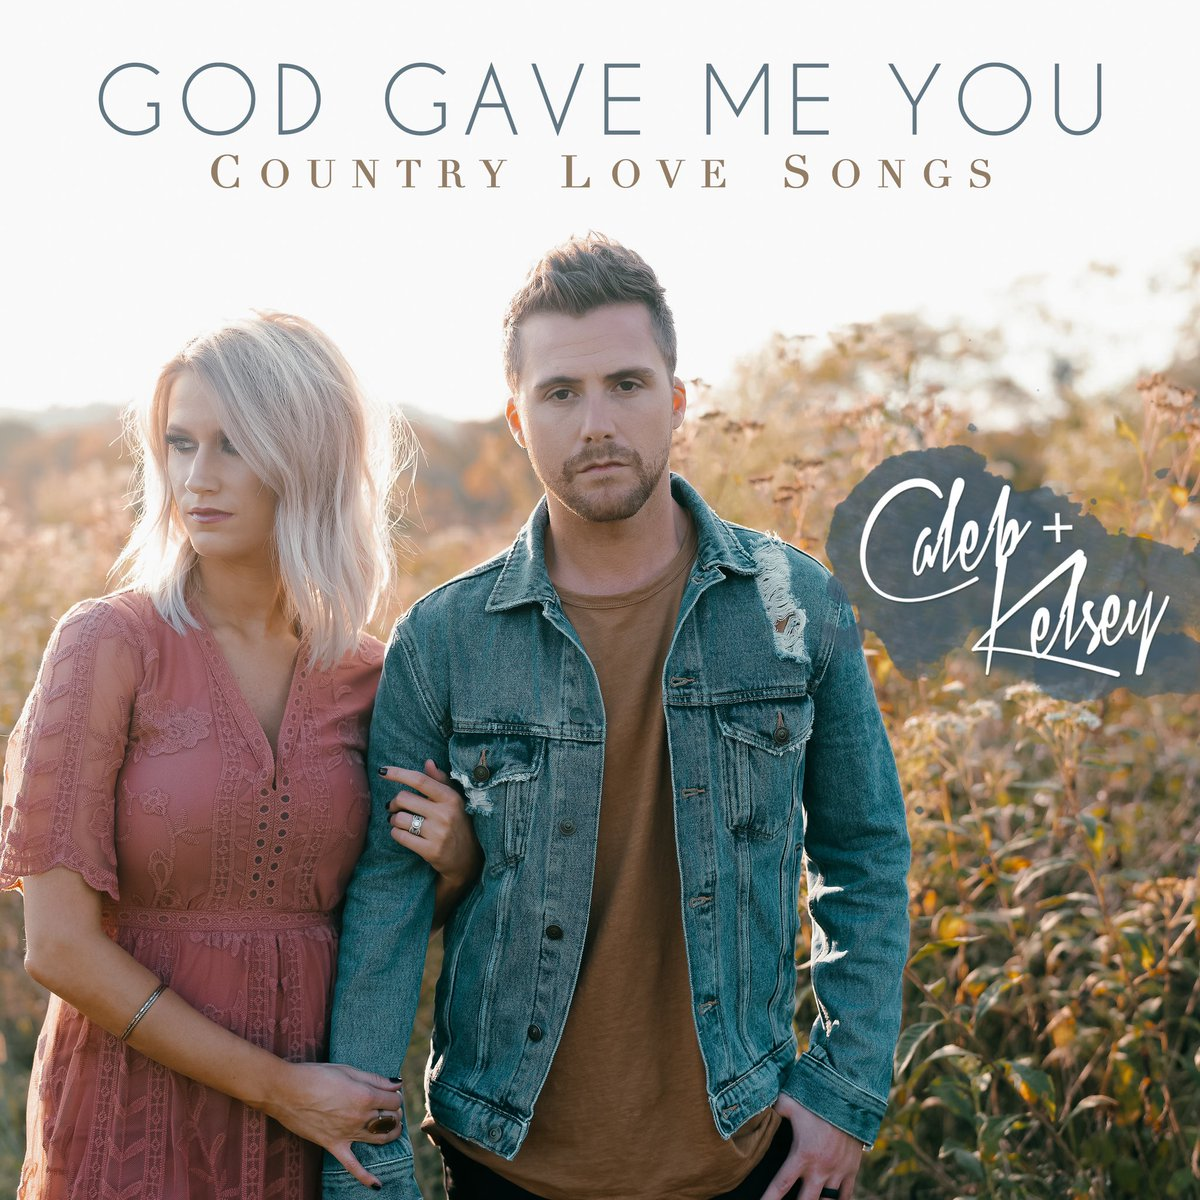 Congrats to @CalebAndKelsey on their brand new album! Check this out, it's so good!  https://t.co/JUGOCu9Olq